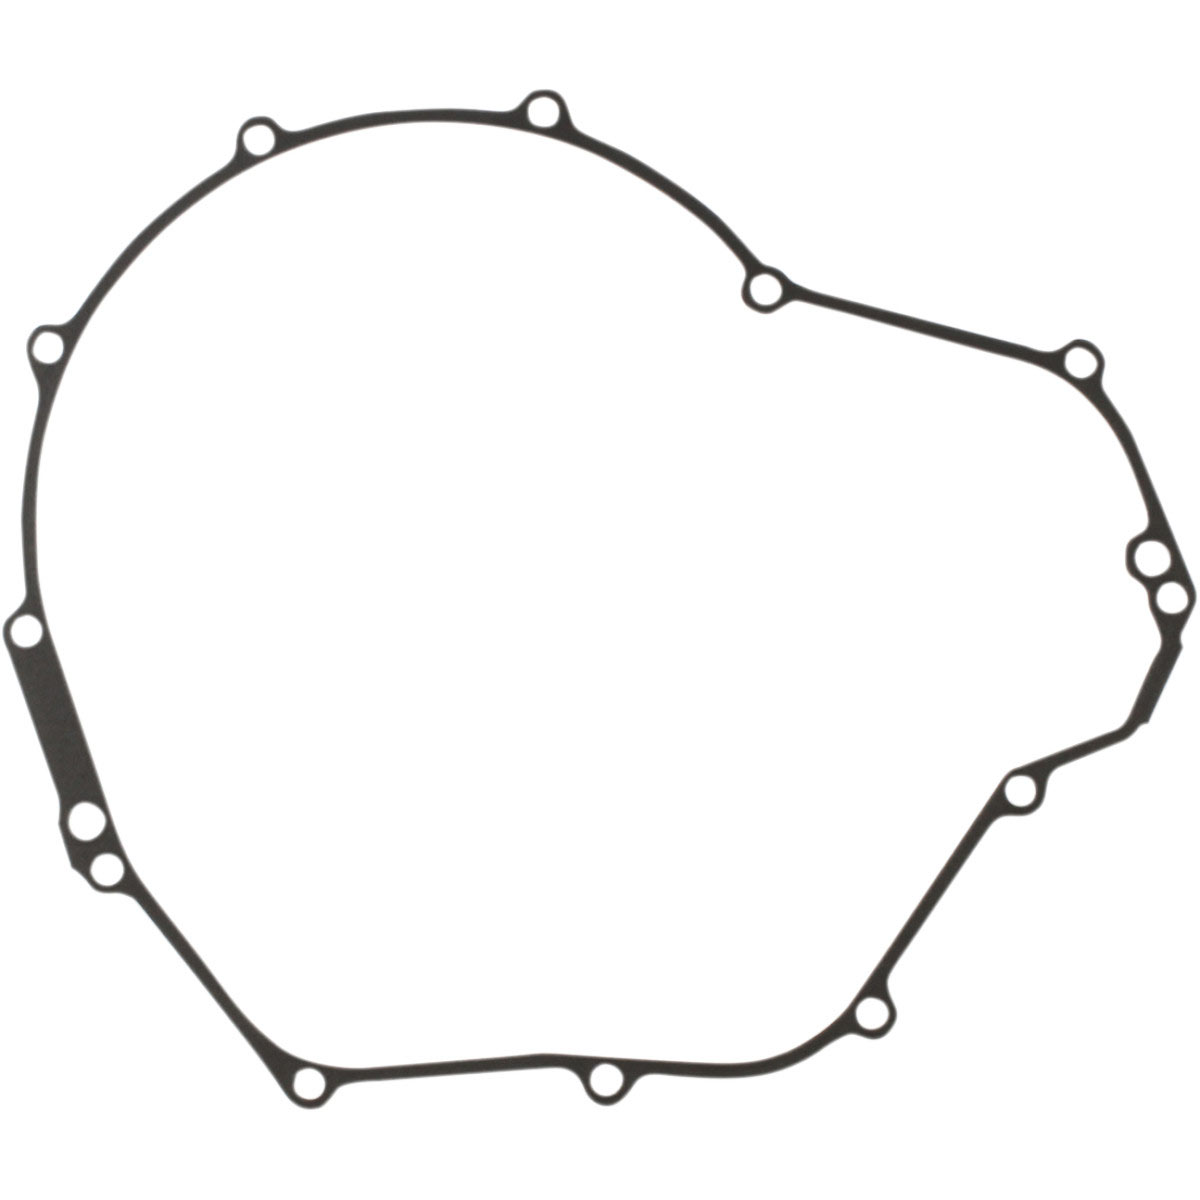 Cometic Clutch Cover Gasket for Versys 650 06-14